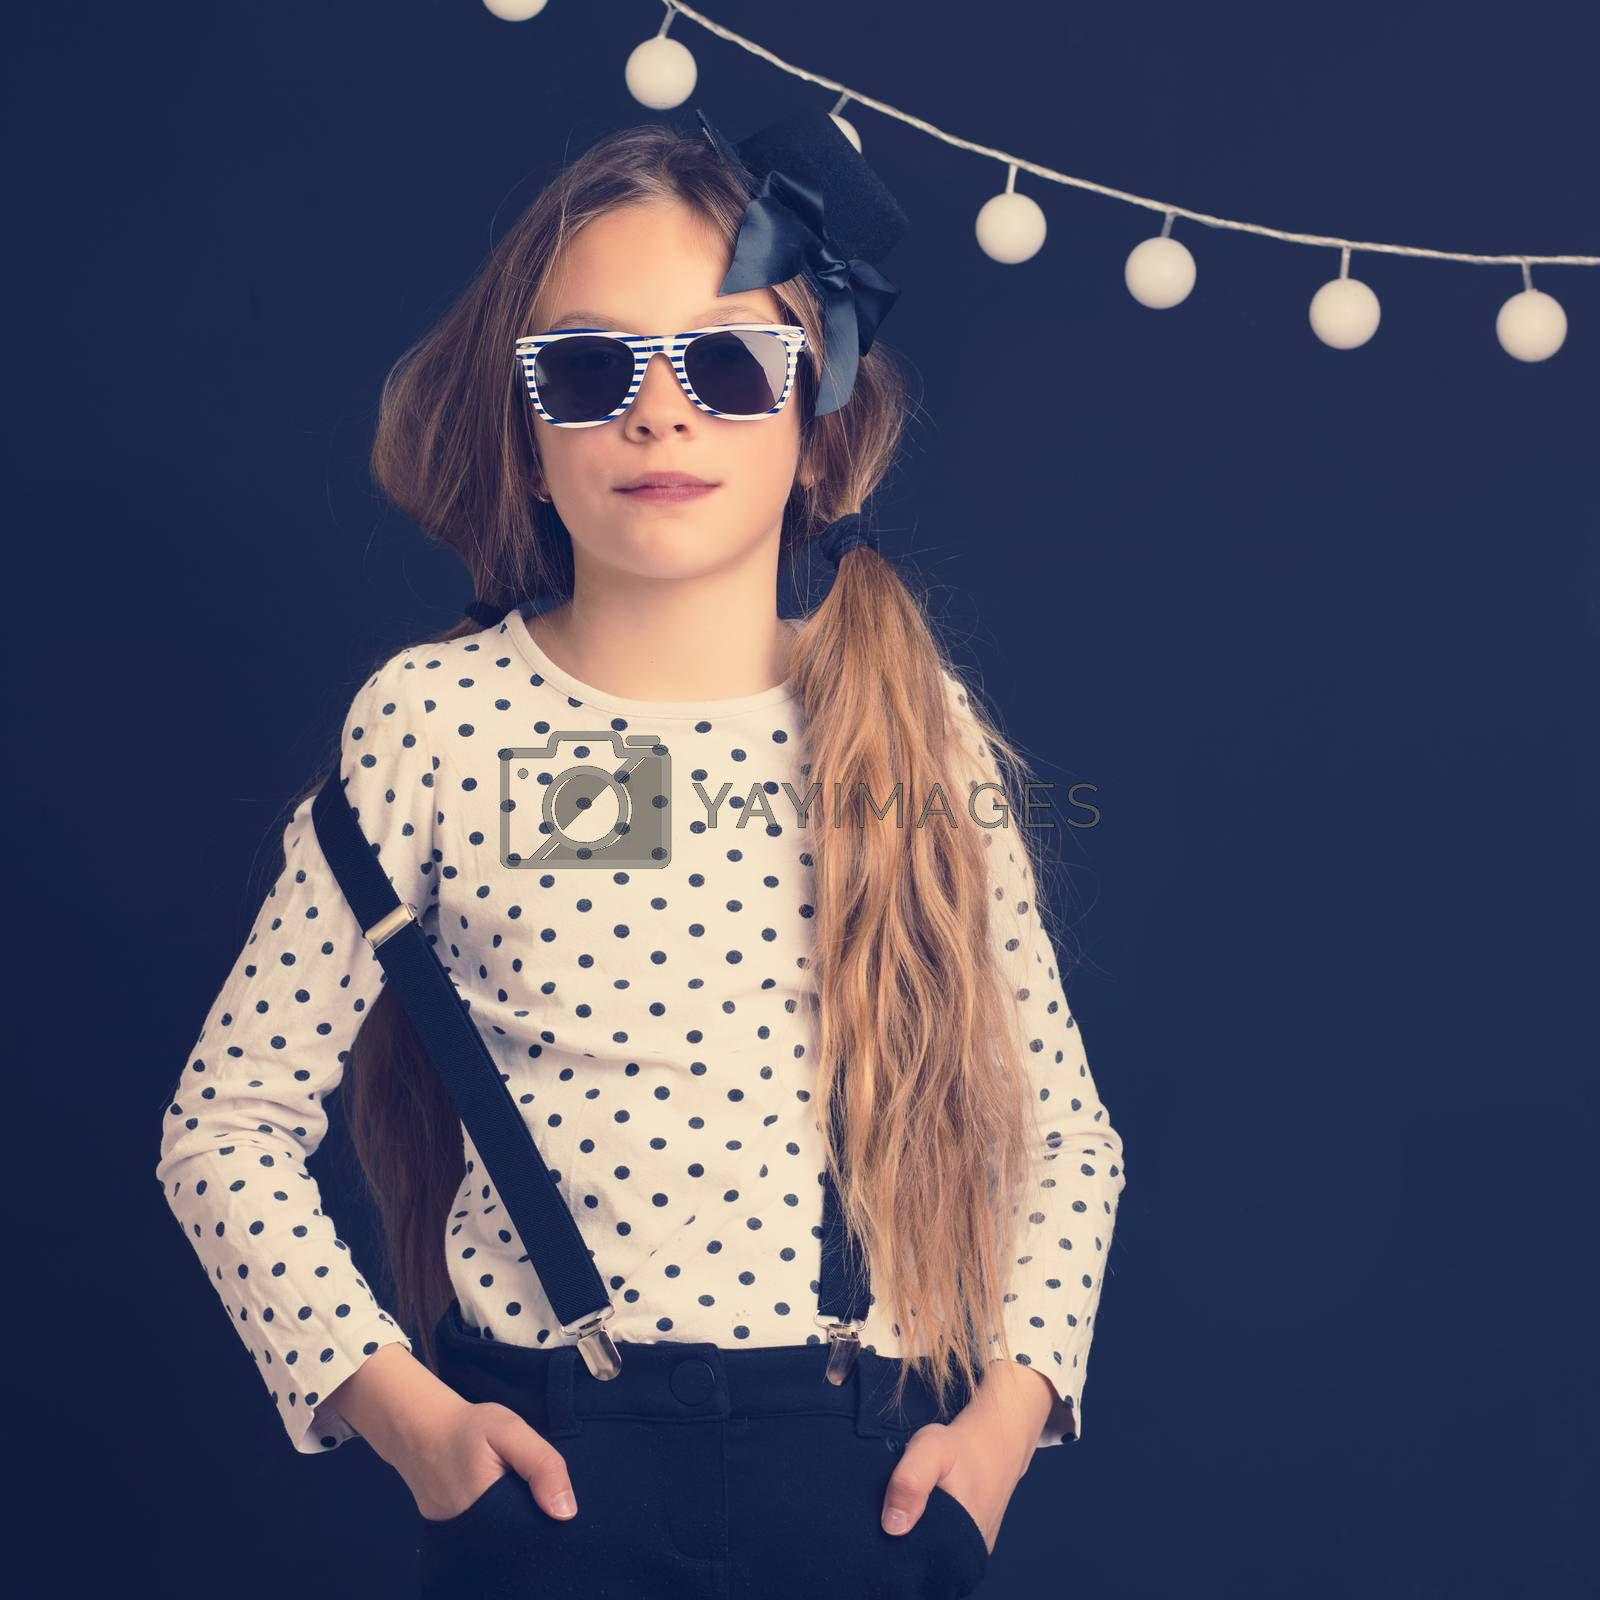 Fashion photo of young hipster child wearing cool clothes and sunglasses standing over dark wall, instagram toned image